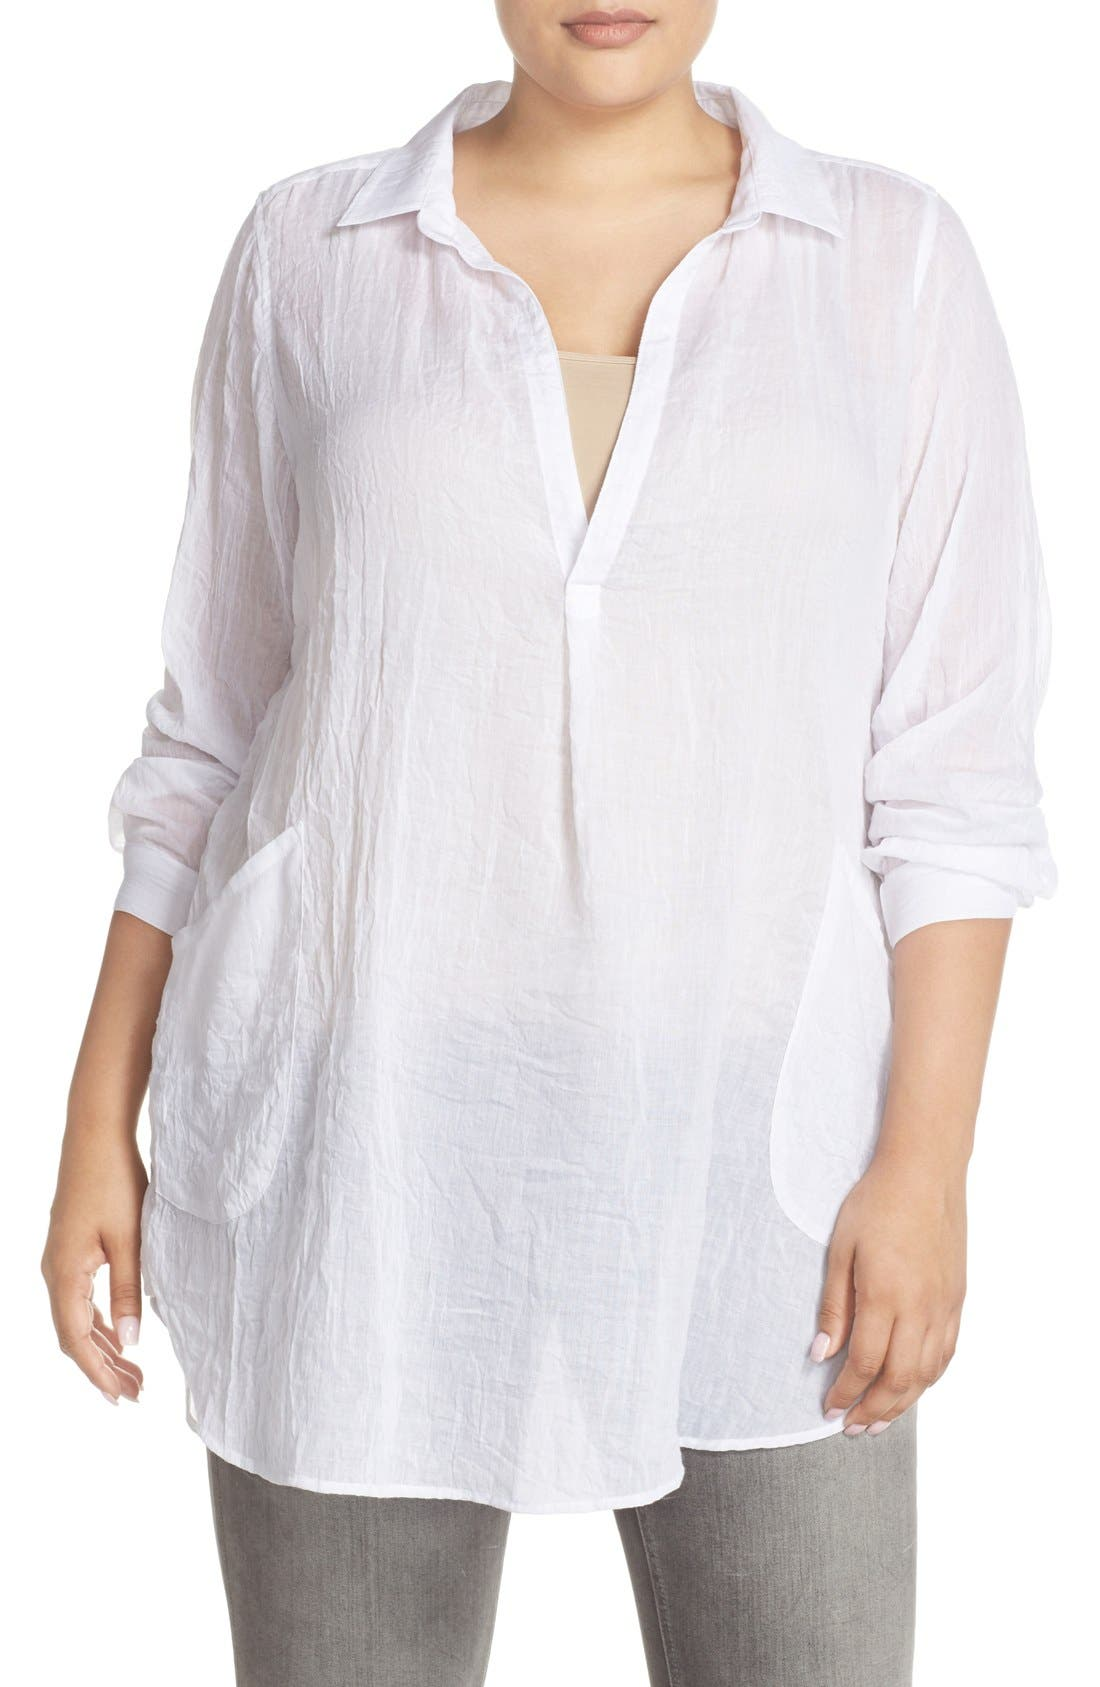 Alternate Image 1 Selected - Melissa McCarthy Seven7 Patch Pocket Tunic Shirt (Plus Size)